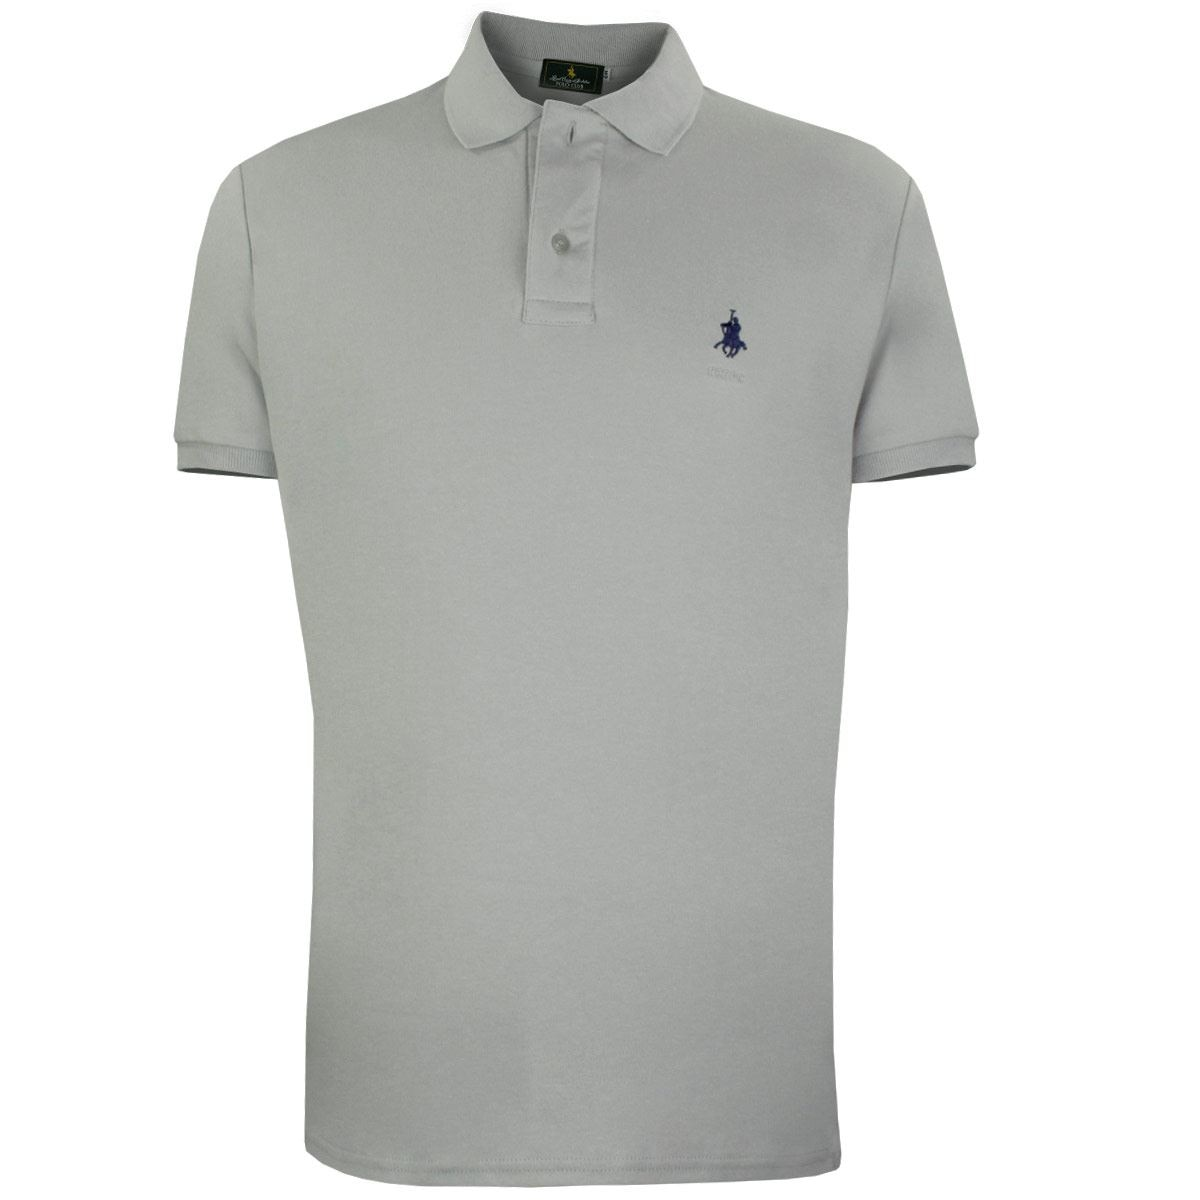 Playera Polo Club Mc Liso Algodón Gd Gris